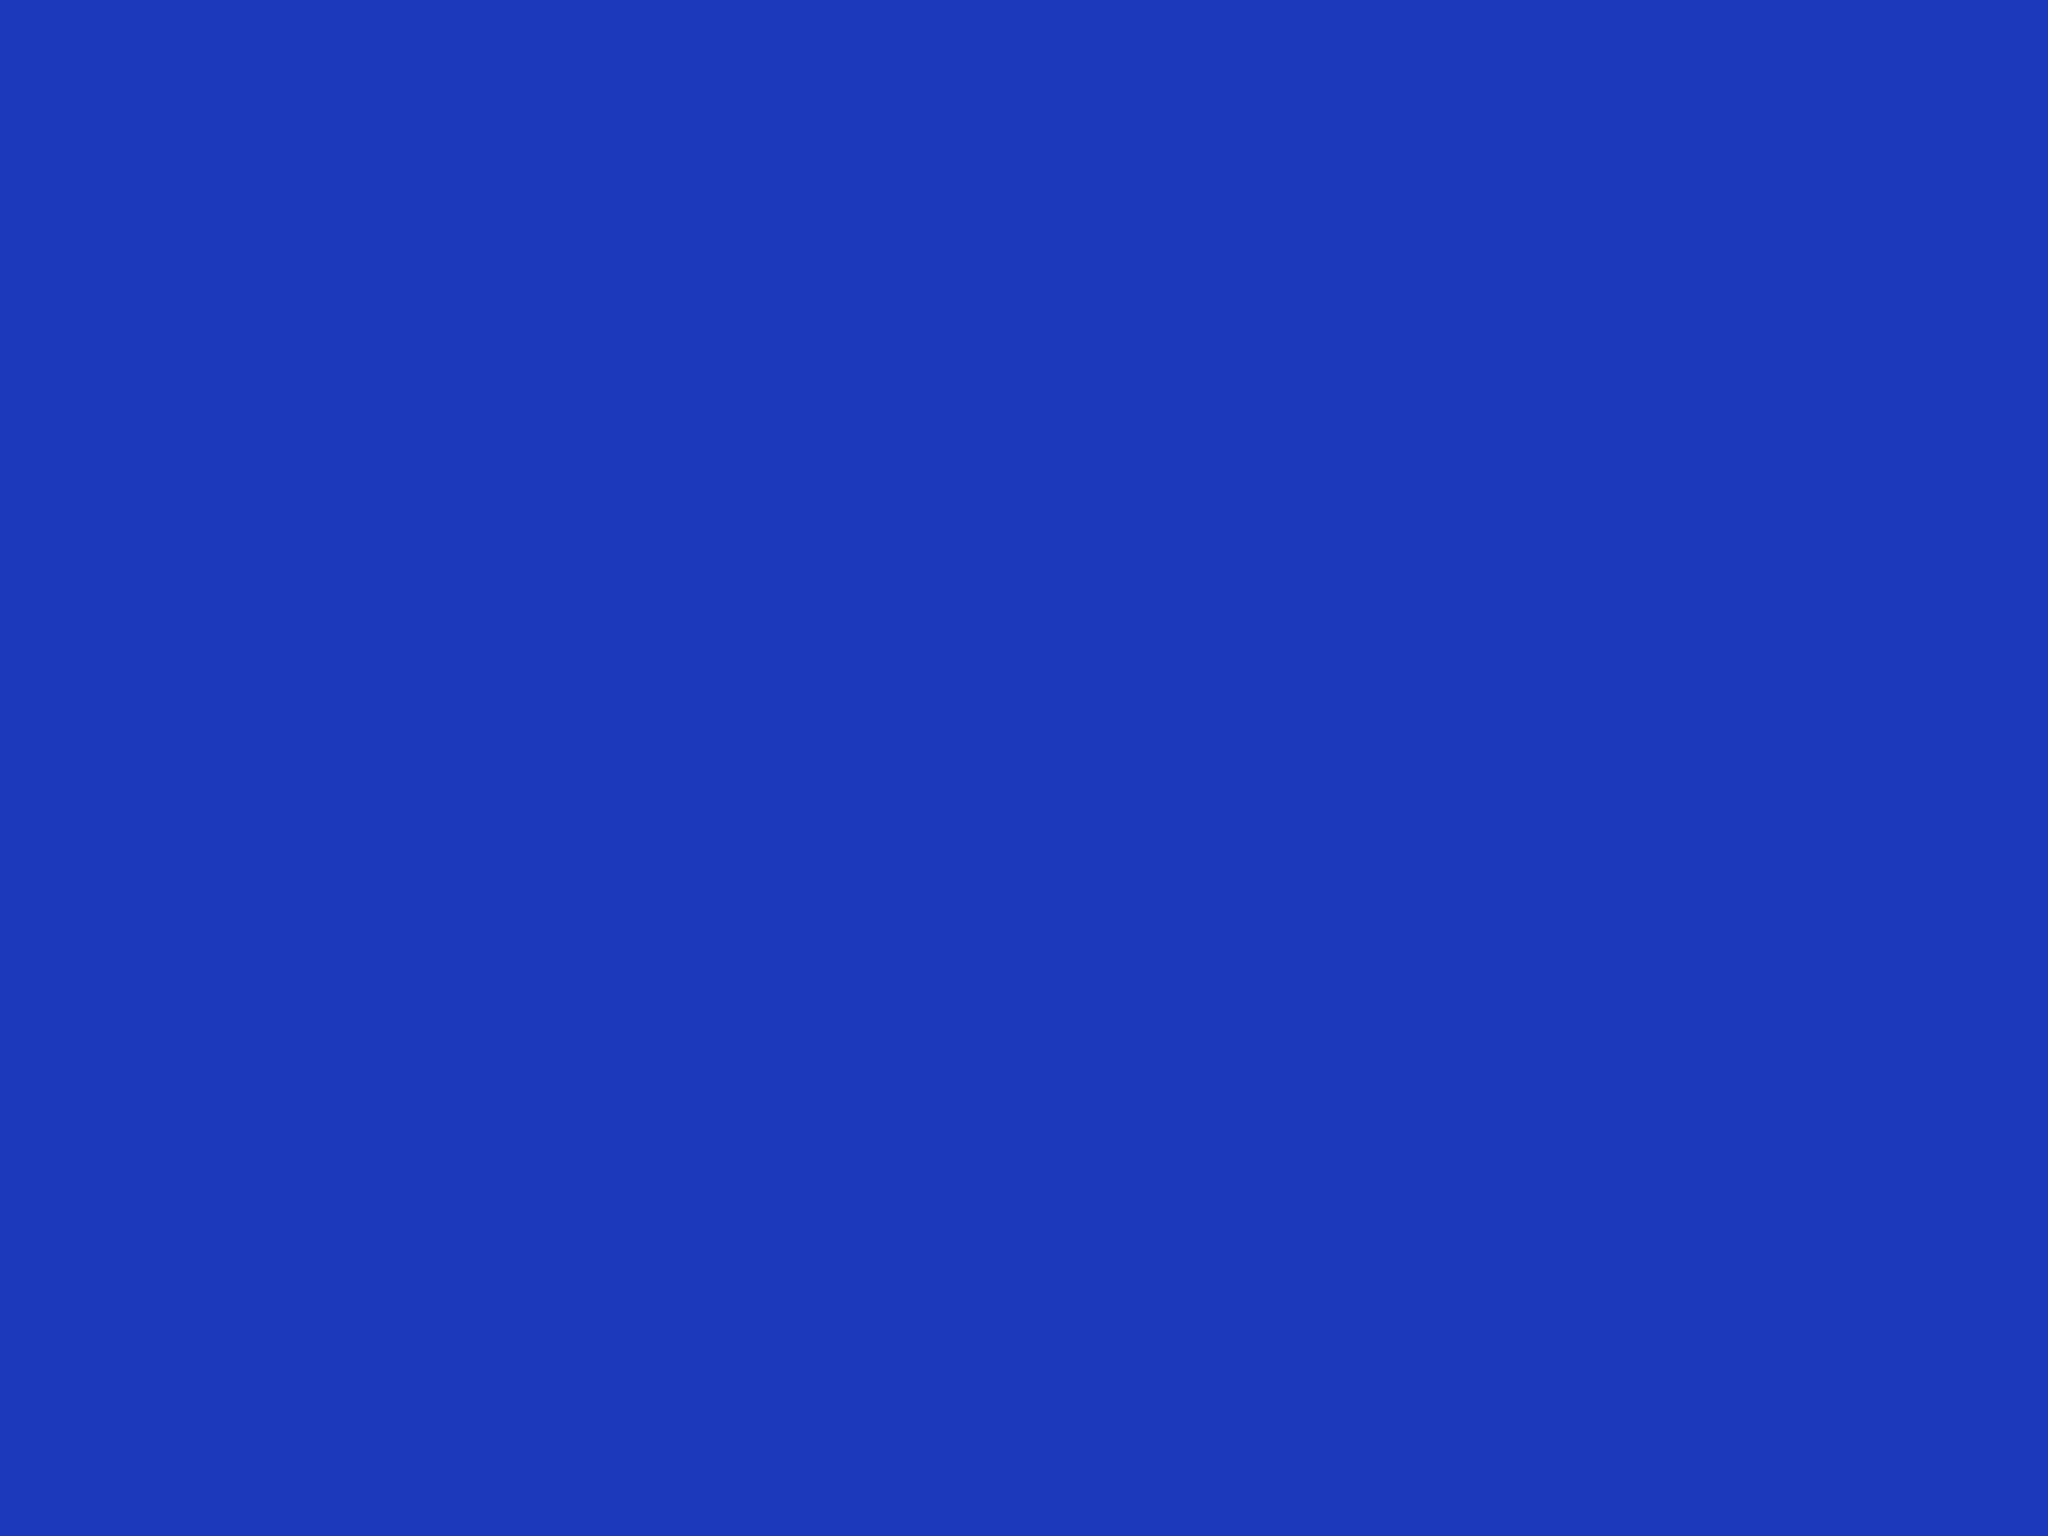 2048x1536 Persian Blue Solid Color Background